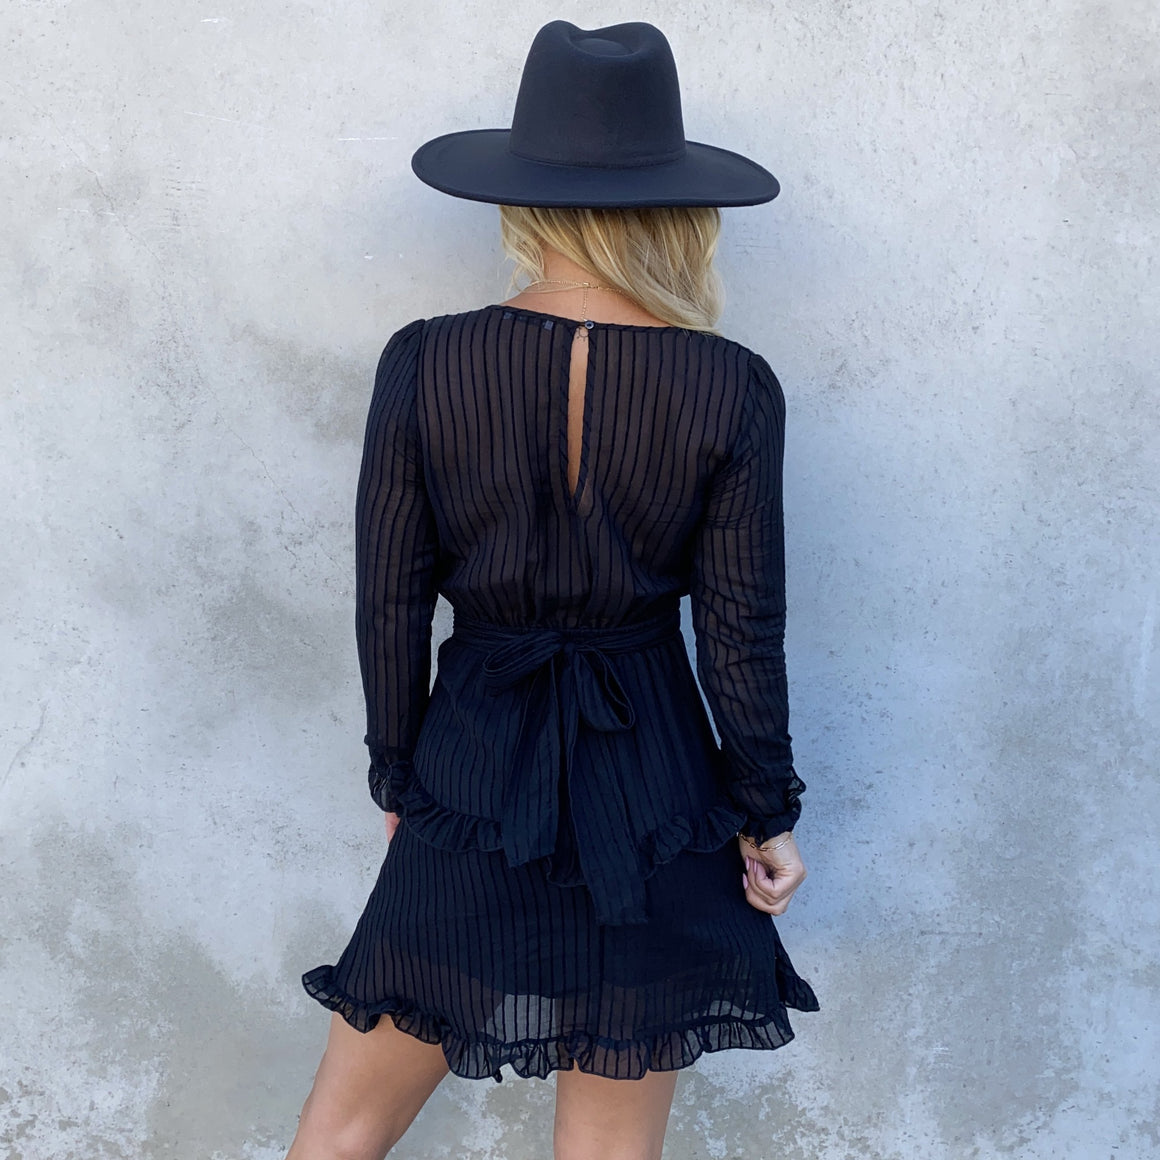 Whole Hearted Black Dress - Dainty Hooligan